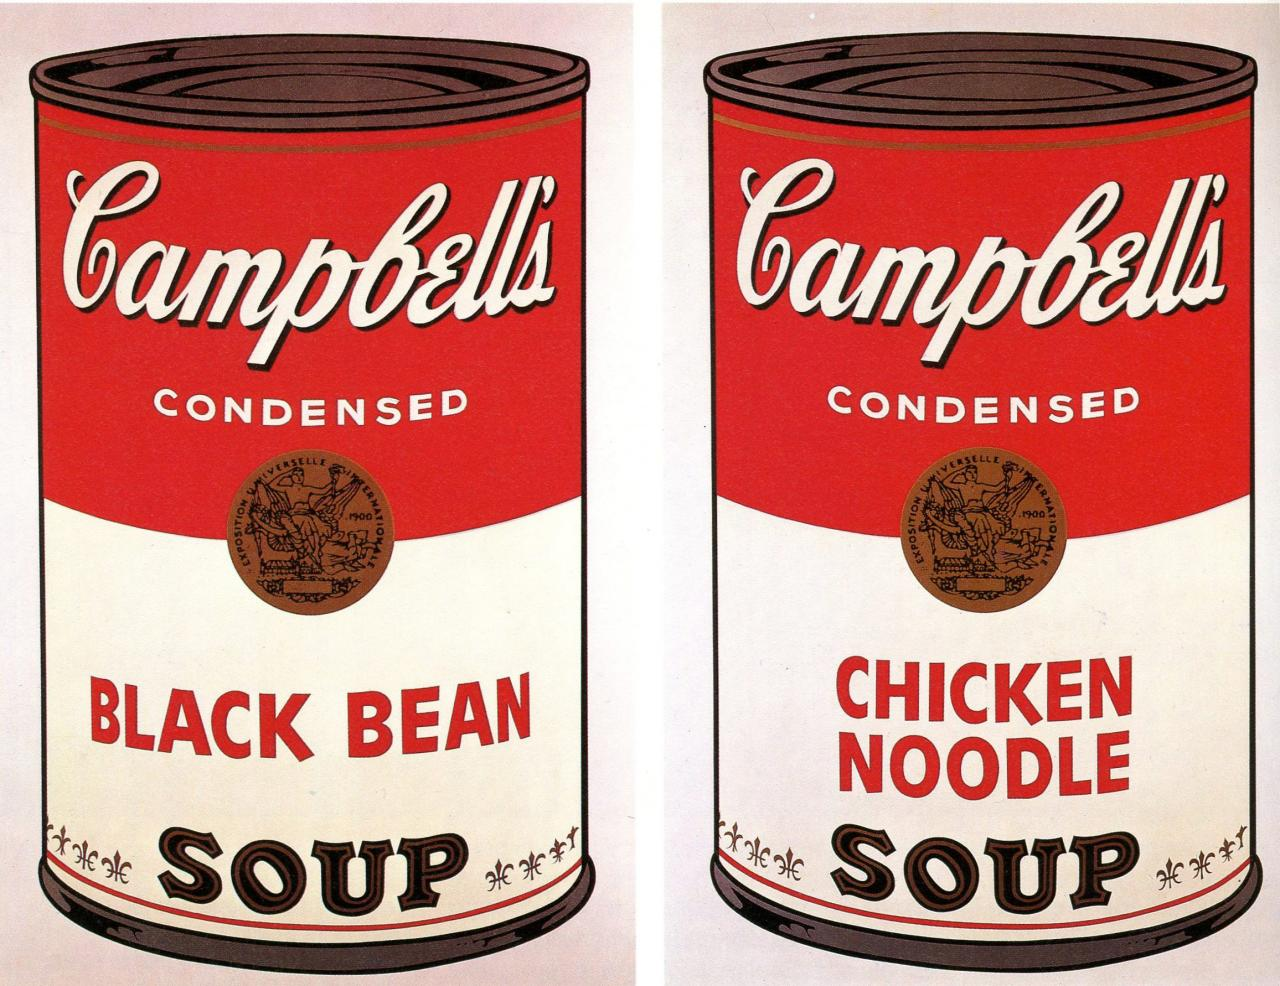 Andy Warhol: Campbell's Soup I (Blatt 1, Black Bean/Blatt 2, Chicken Noodle), 1968, Siebdruck, je 88,9 x 58,4 cm, Dauerleihgabe der Stiftung Hamburger Kunstsammlungen, Copyright 2019 The Andy Warhol Foundation for the Visual Arts, Inc./ Licensed by Artists Rights Society (ARS), New York, Foto: Elke Walford